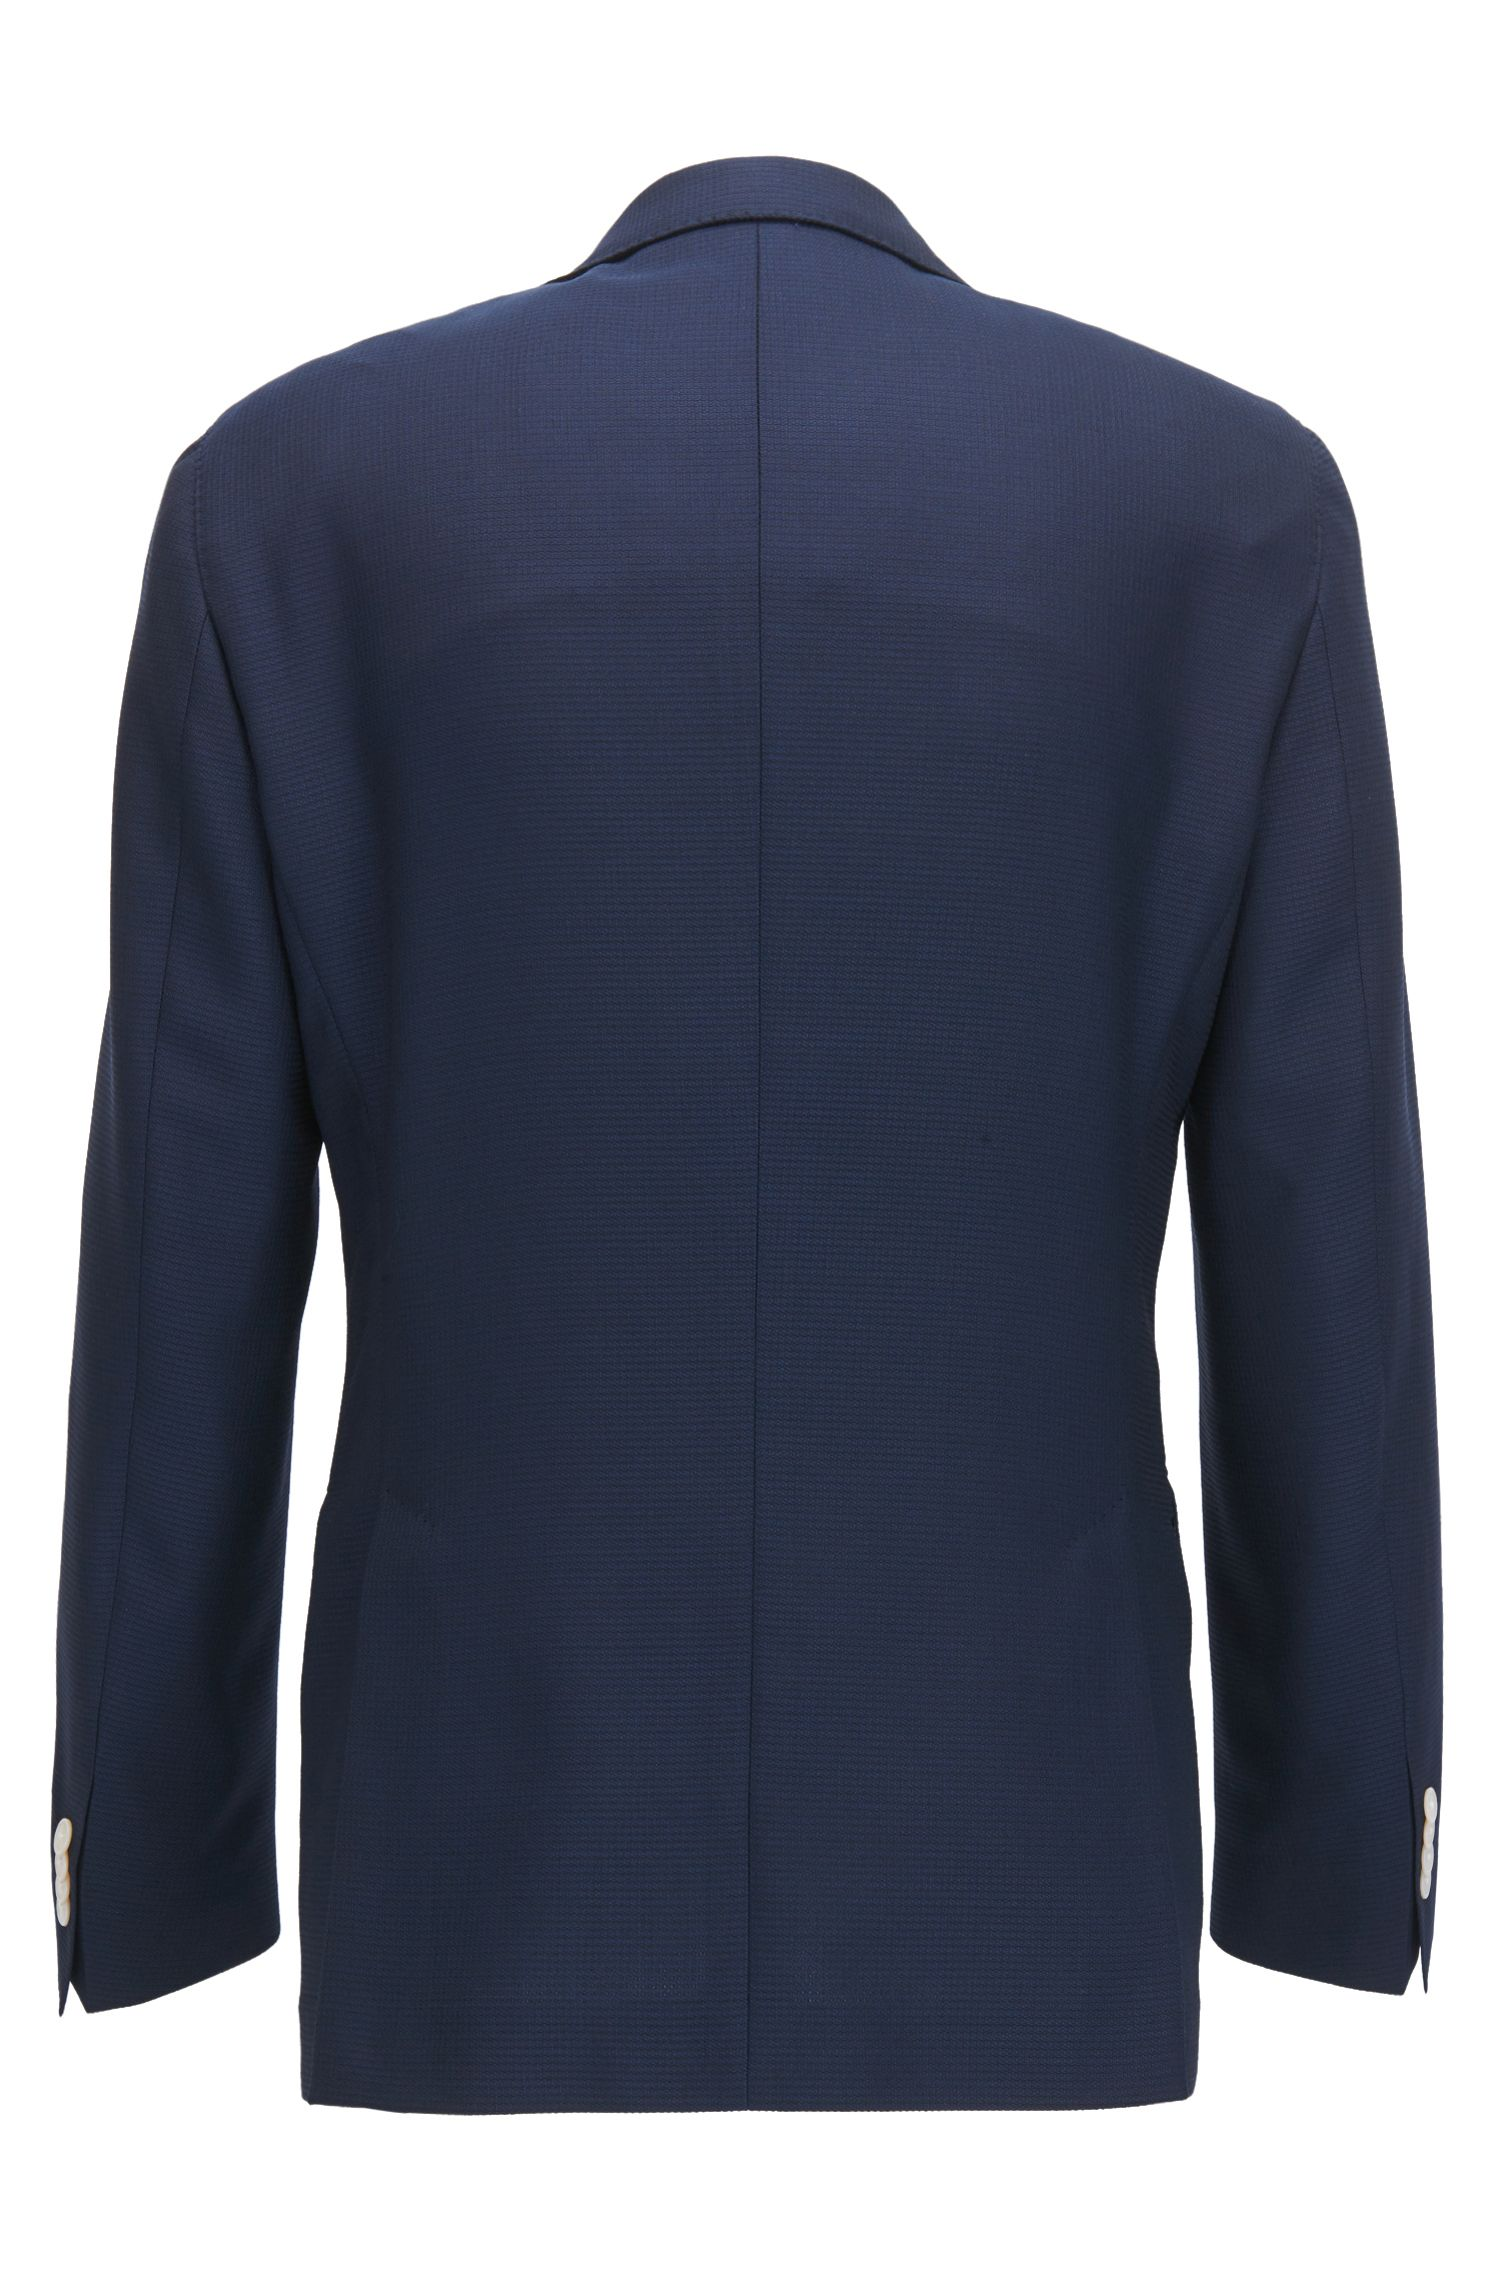 Slim-fit jacket in structured virgin wool with contrast details